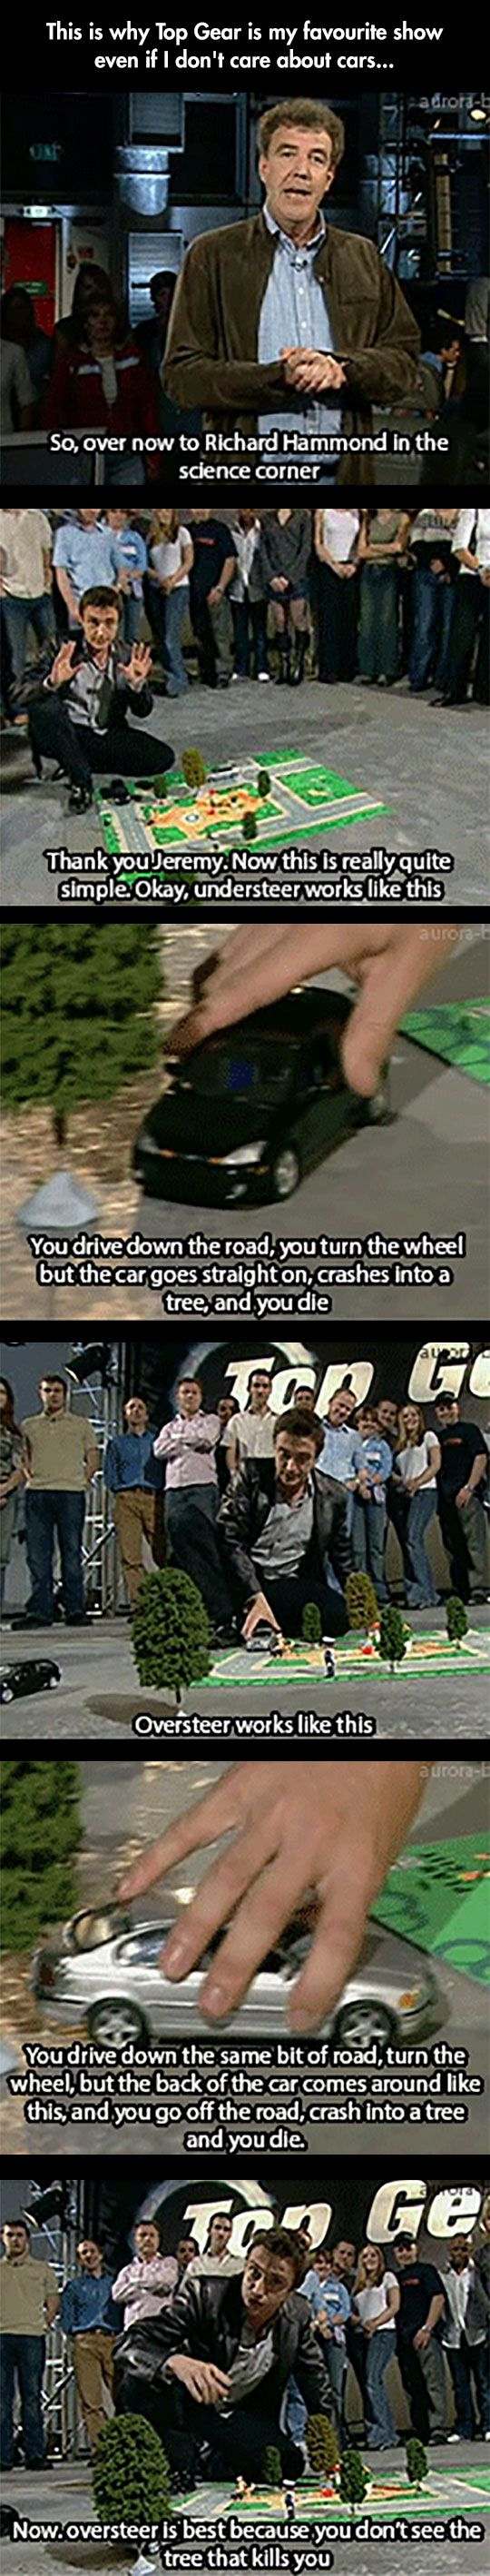 What makes Top Gear a great show although I actually do love the cars!